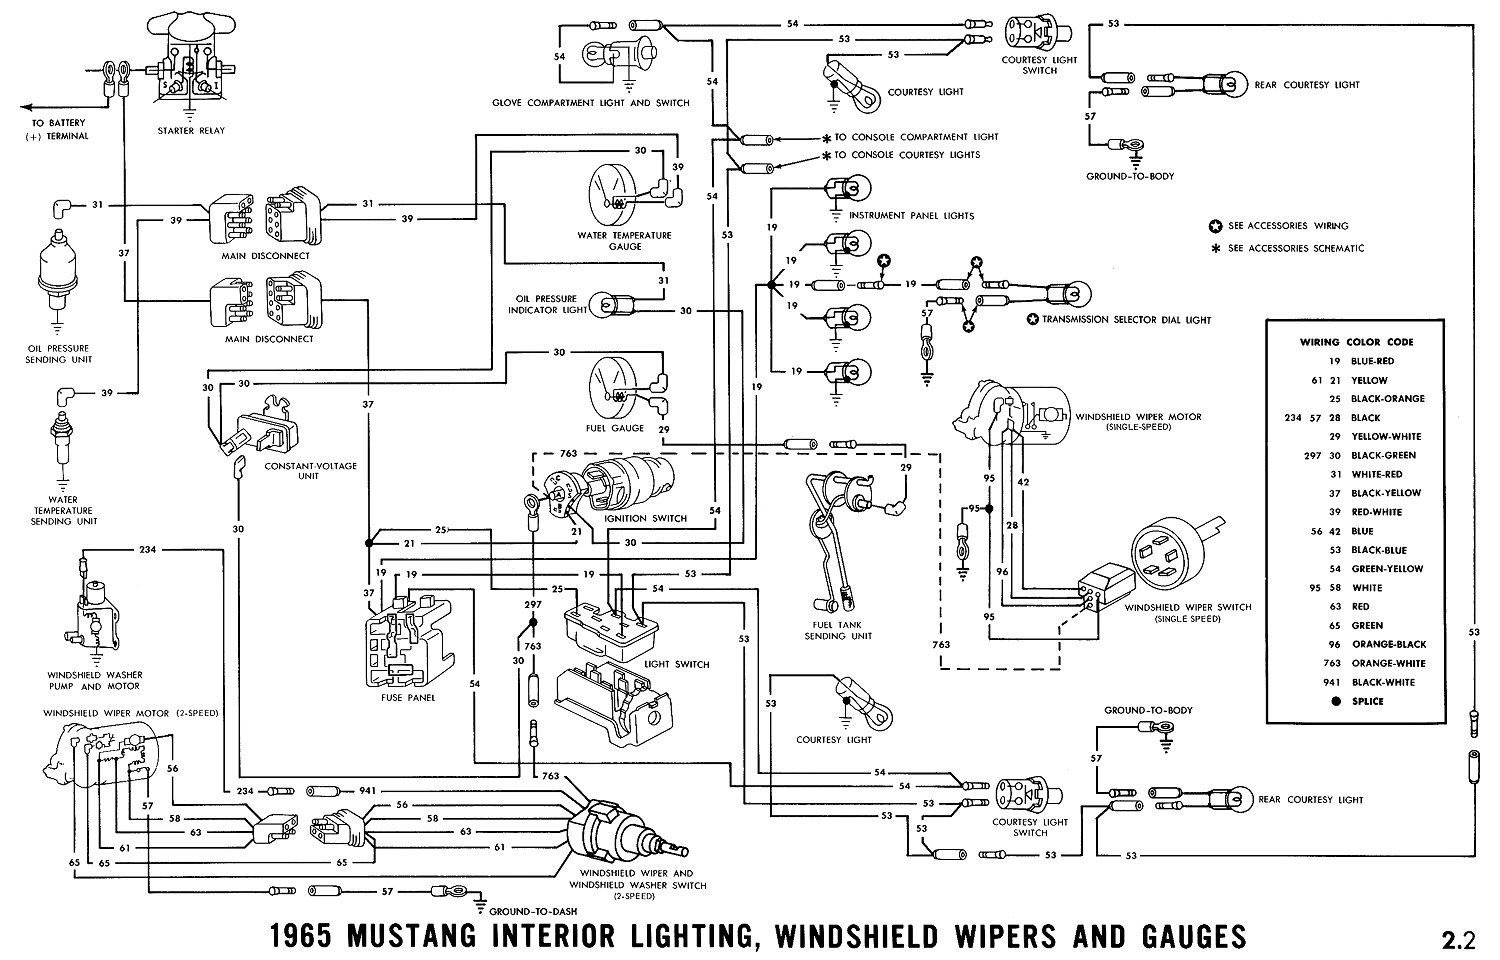 1965g 1965 mustang wiring diagrams average joe restoration 1969 mustang ignition switch wiring diagram at soozxer.org